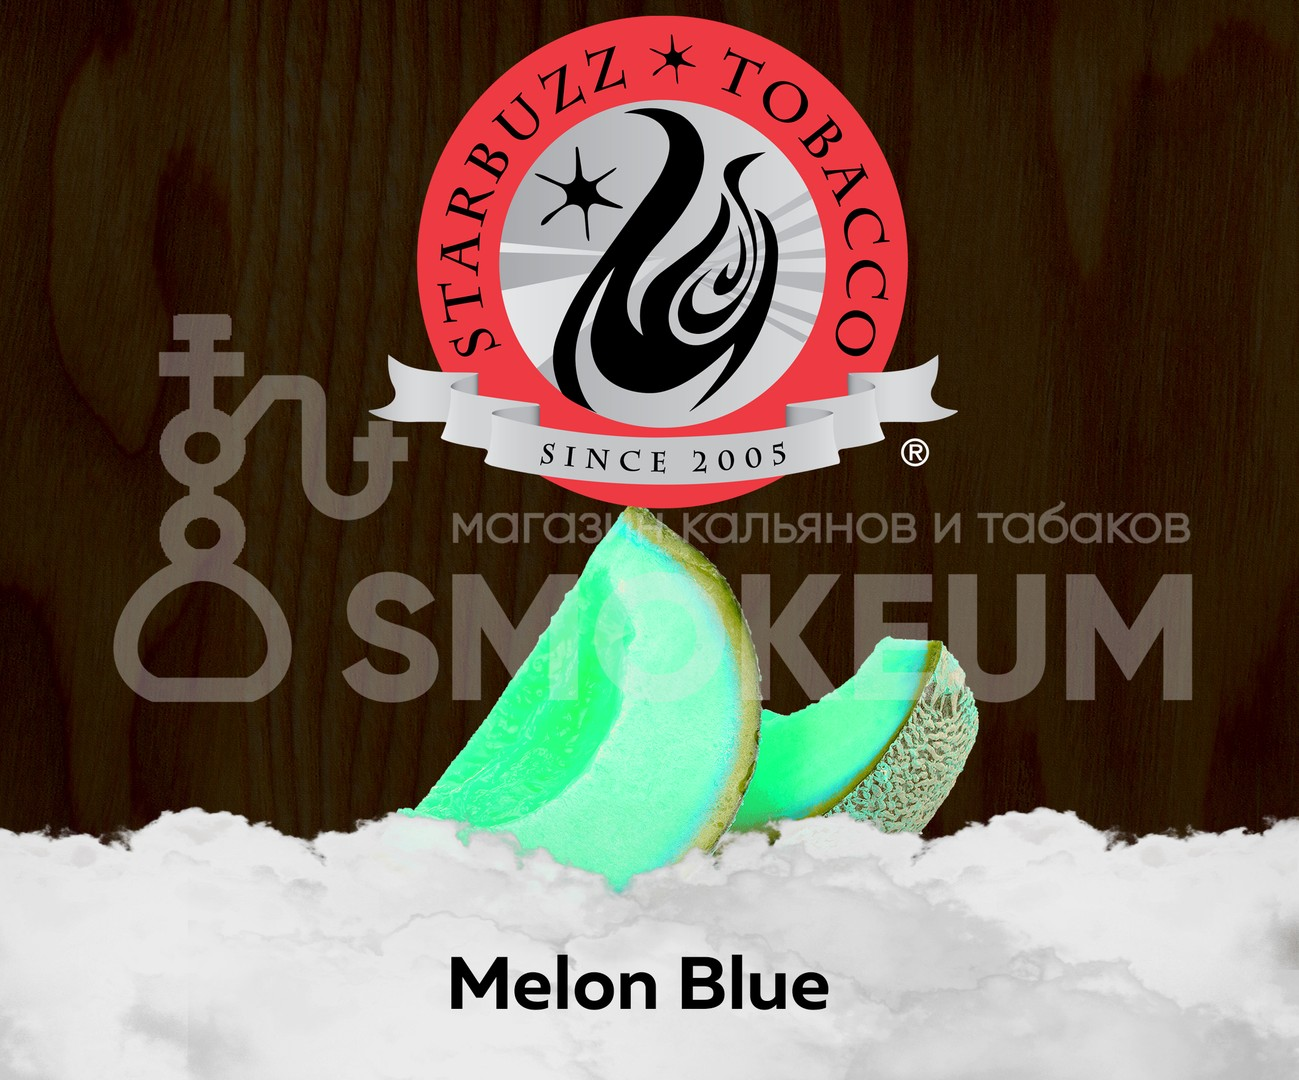 Табак Starbuzz - Melon Blue (Голубая дыня) 250 гр